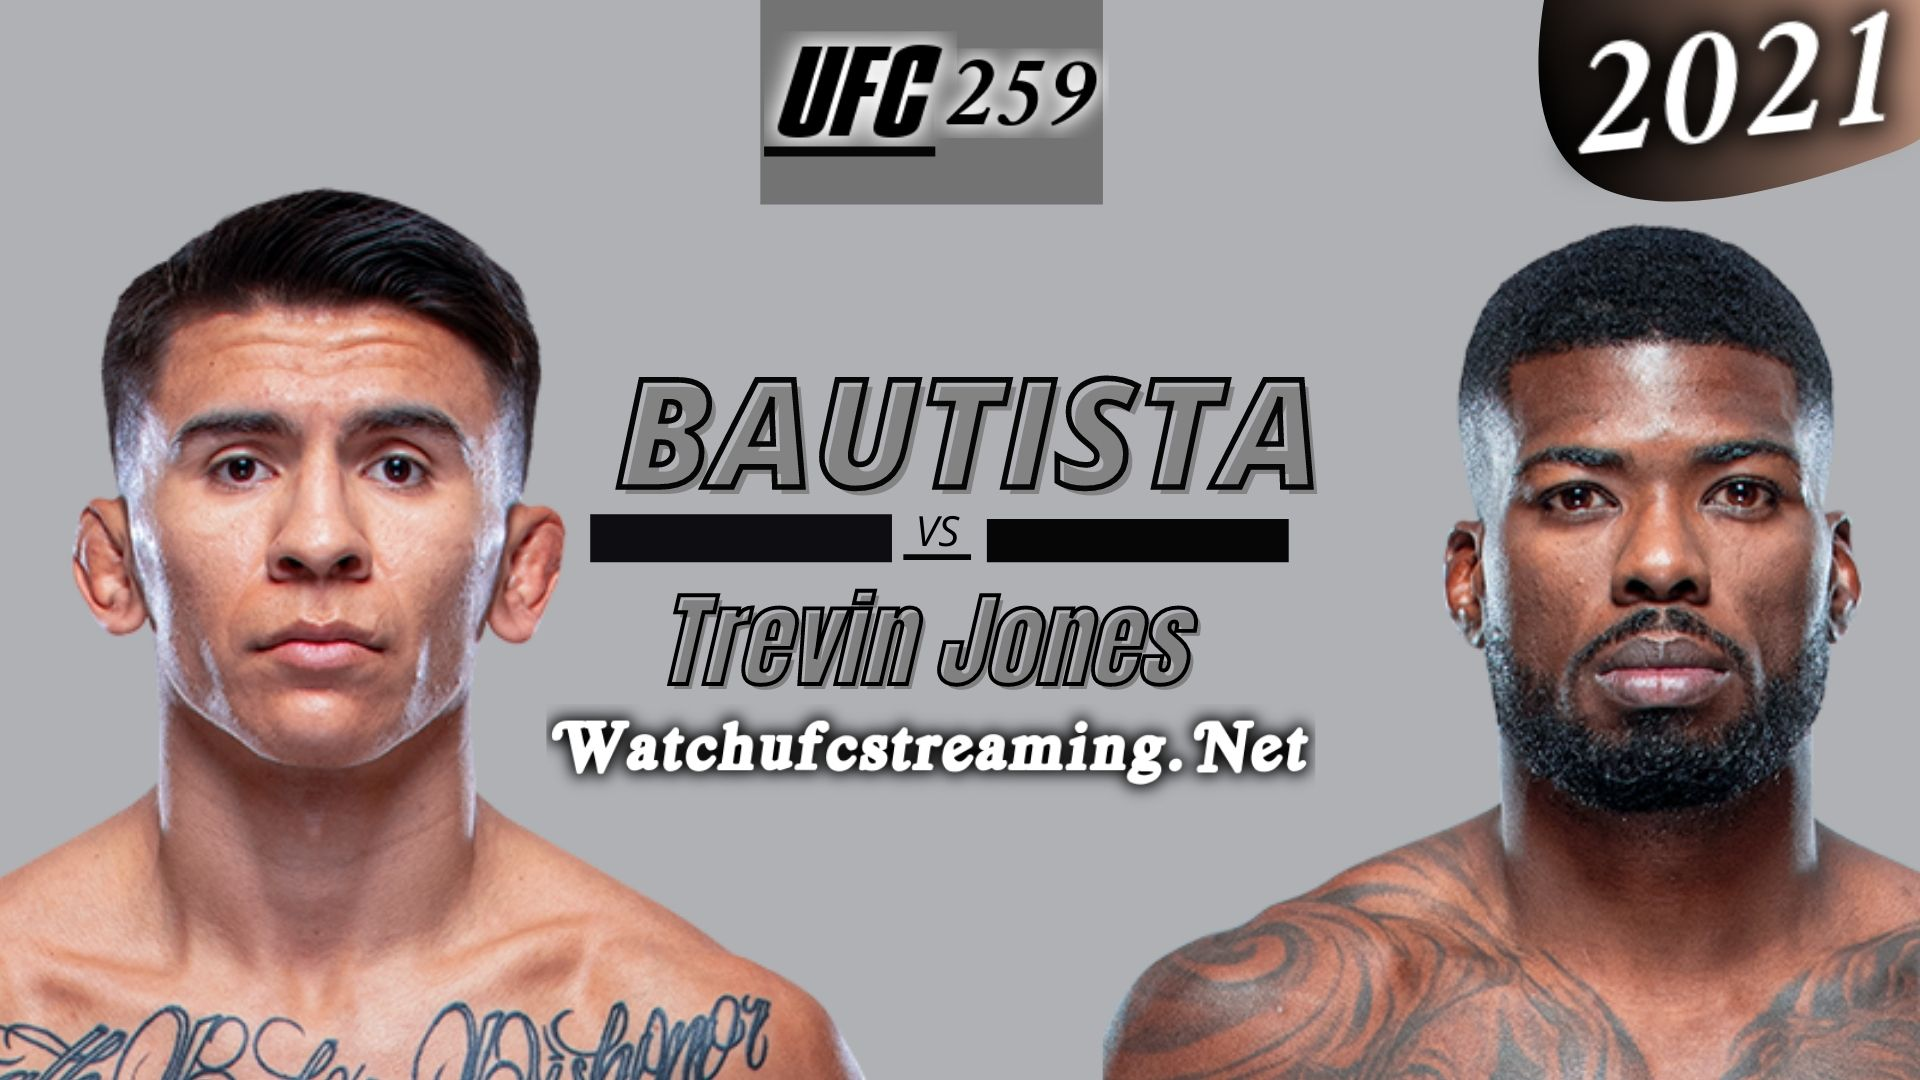 UFC 259: Mario Bautista Vs Trevin Jones Highlights 2021 | Flyweight